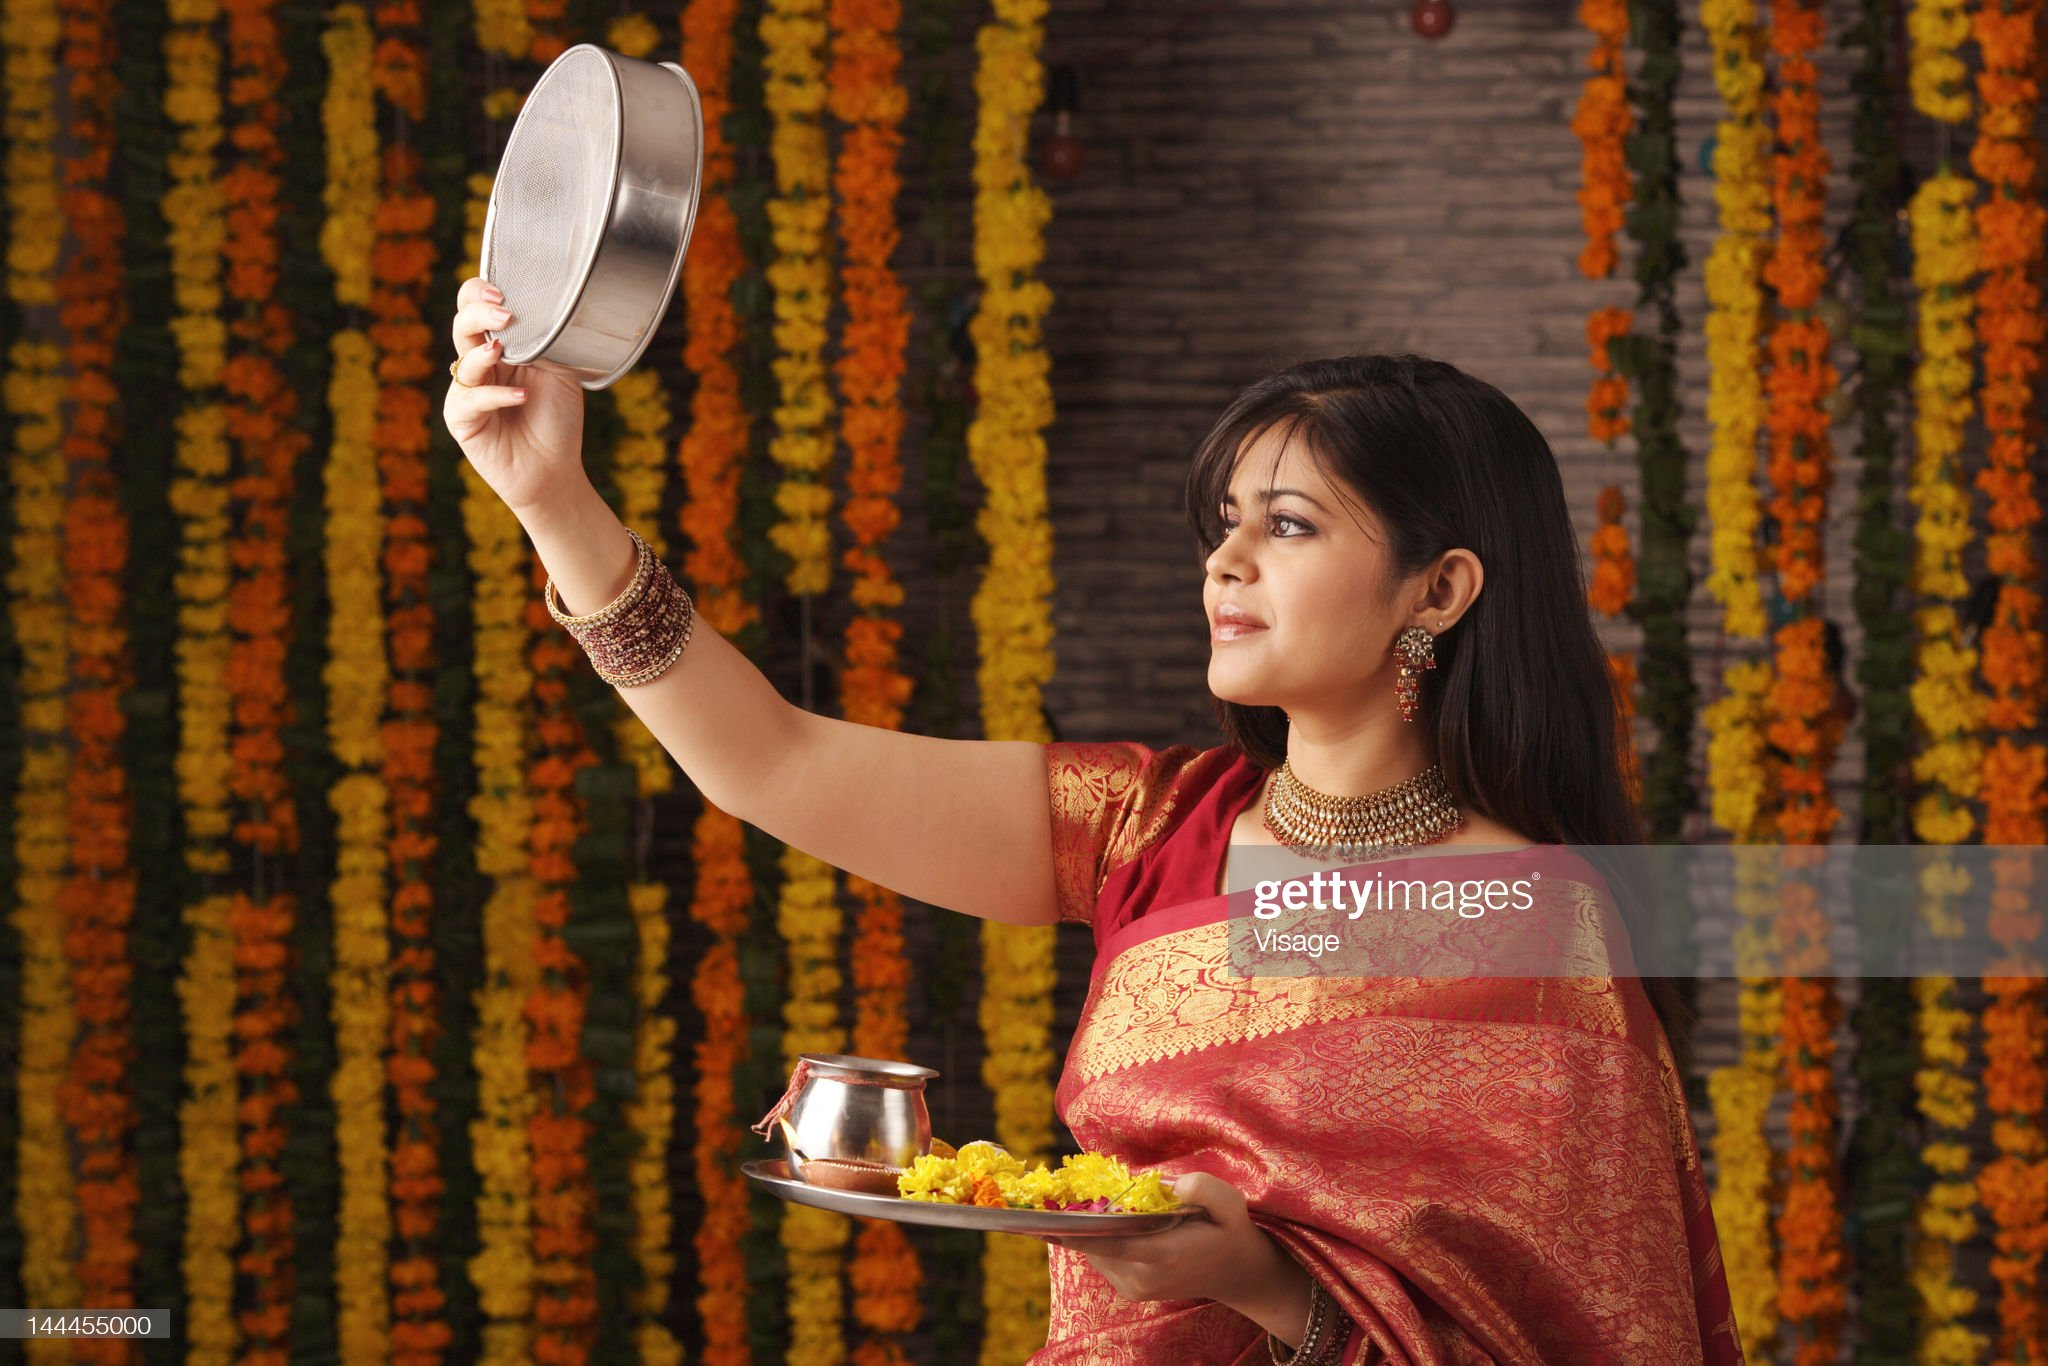 A woman performing the Karva chauth ritual : Stock Photo